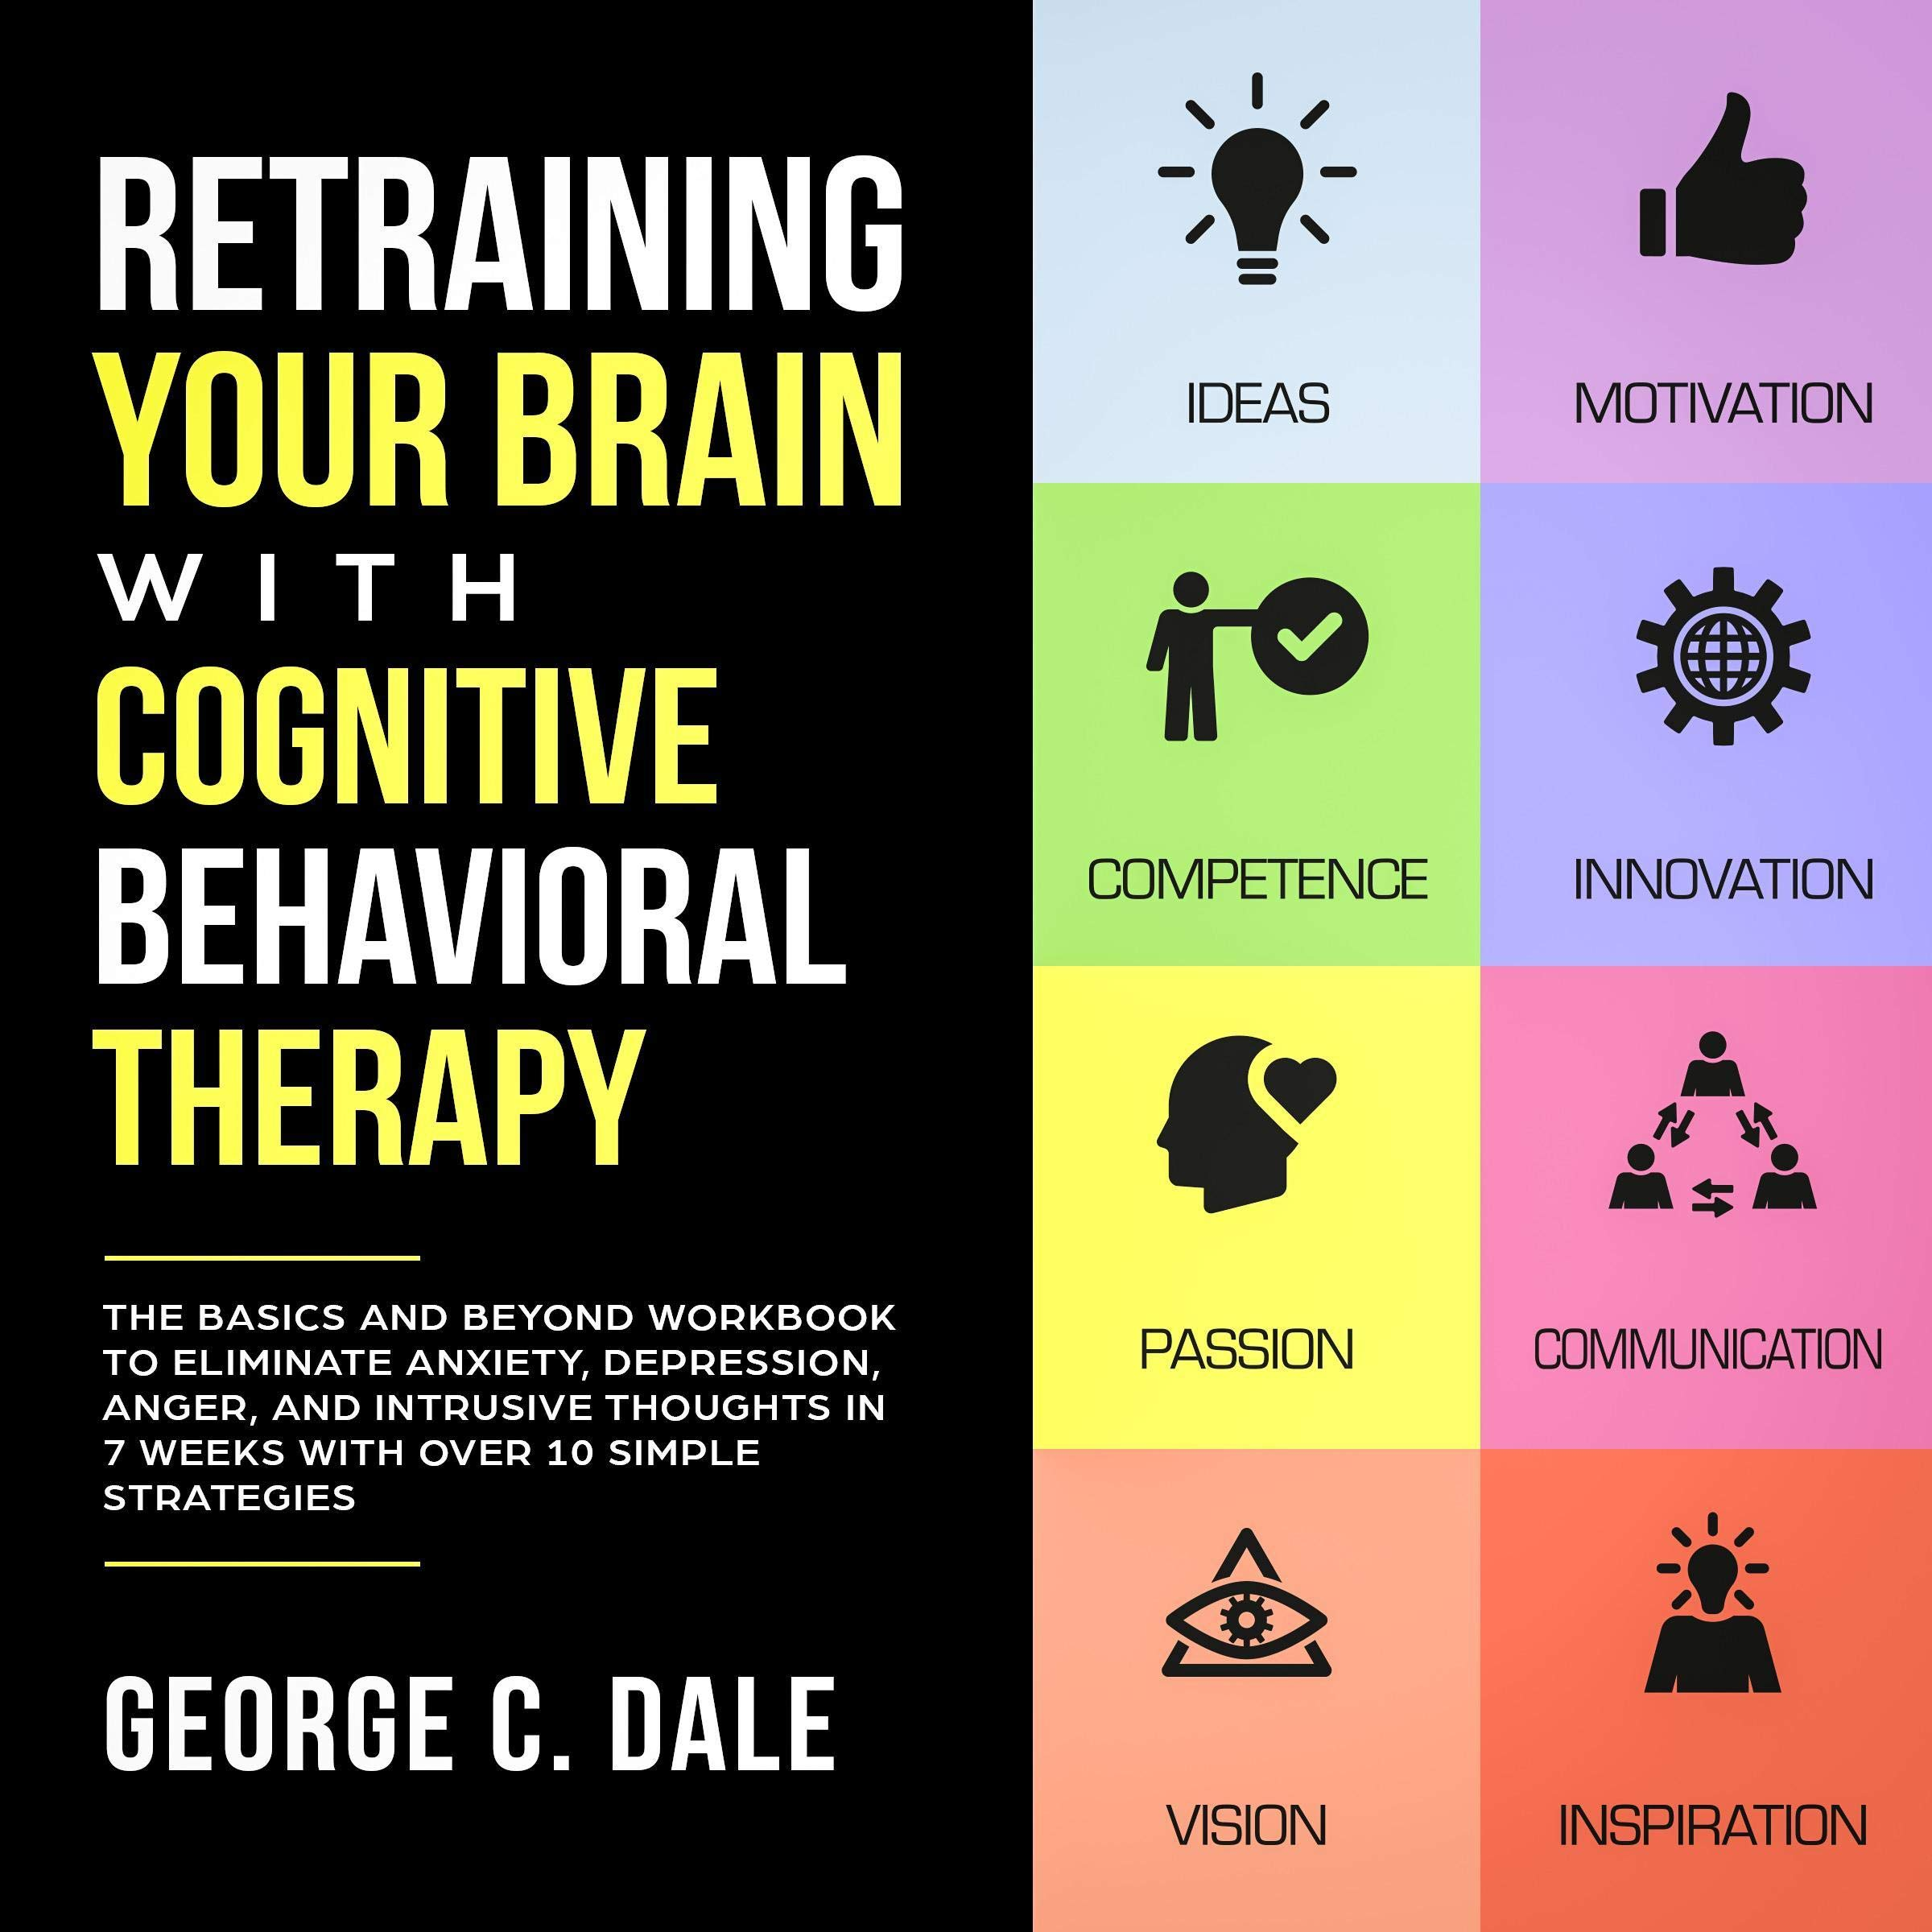 Download Retraining Your Brain with Cognitive Behavioral Therapy: The Basics and Beyond Workbook to Eliminate Anxiety, Depression, Anger, and Intrusive Thoughts in 7 Weeks with Over 10 Simple Strategies by George C. Dale